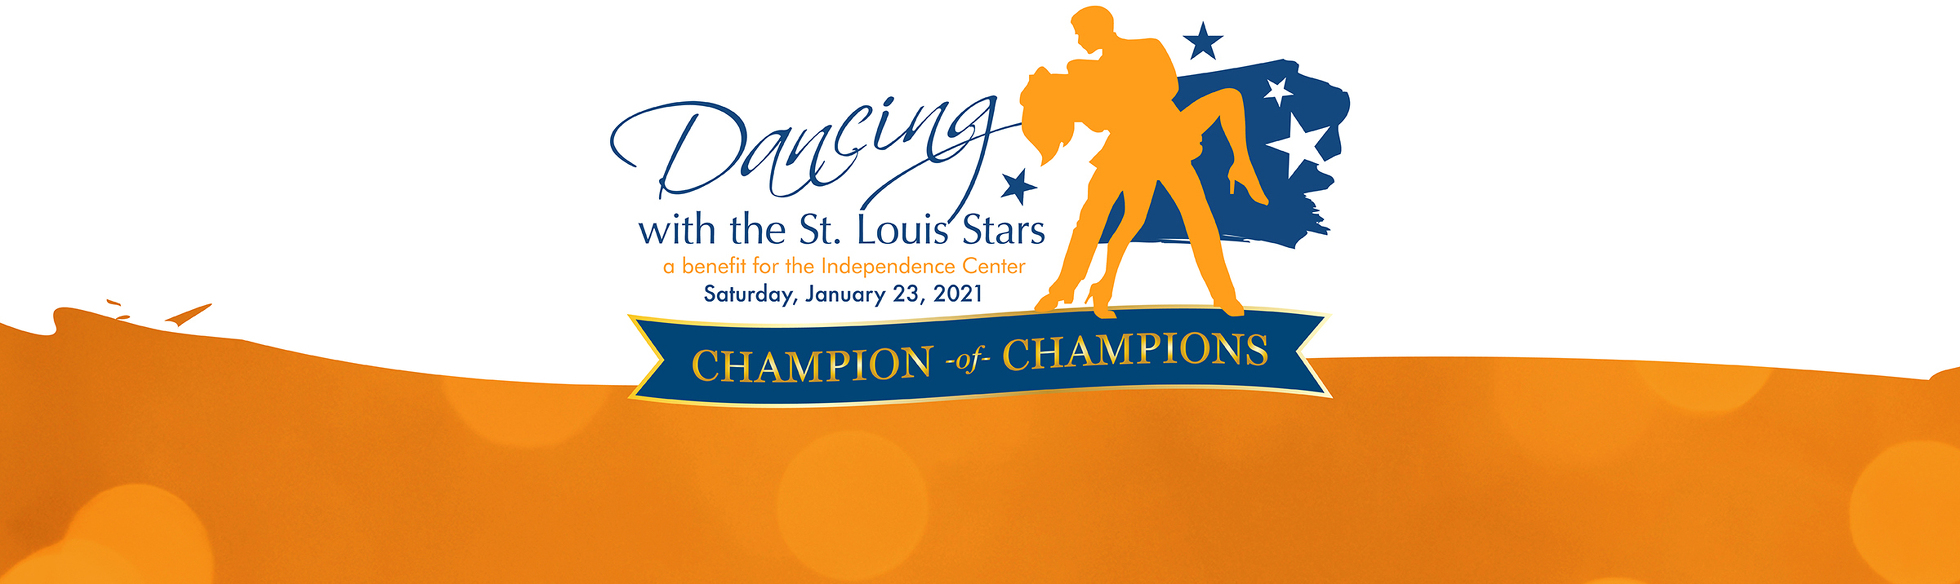 Dancing with the St. Louis Stars